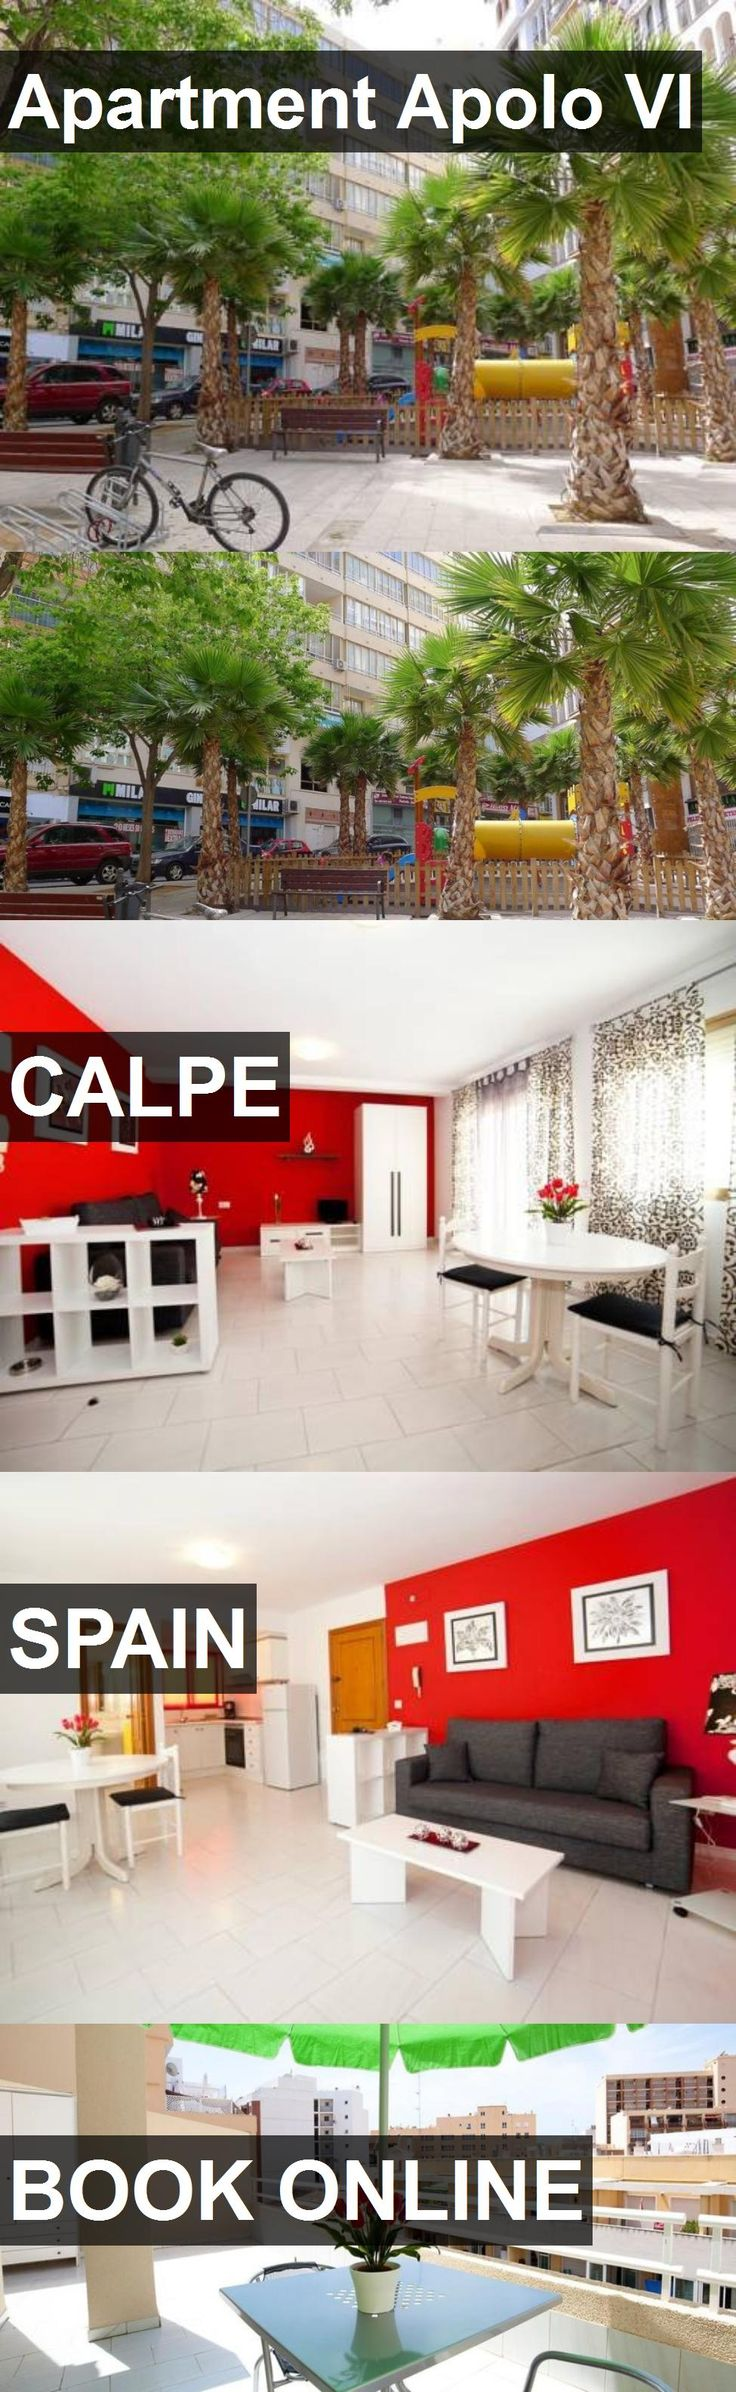 Apartment Apolo VI in Calpe, Spain. For more information, photos, reviews and best prices please follow the link. #Spain #Calpe #travel #vacation #apartment